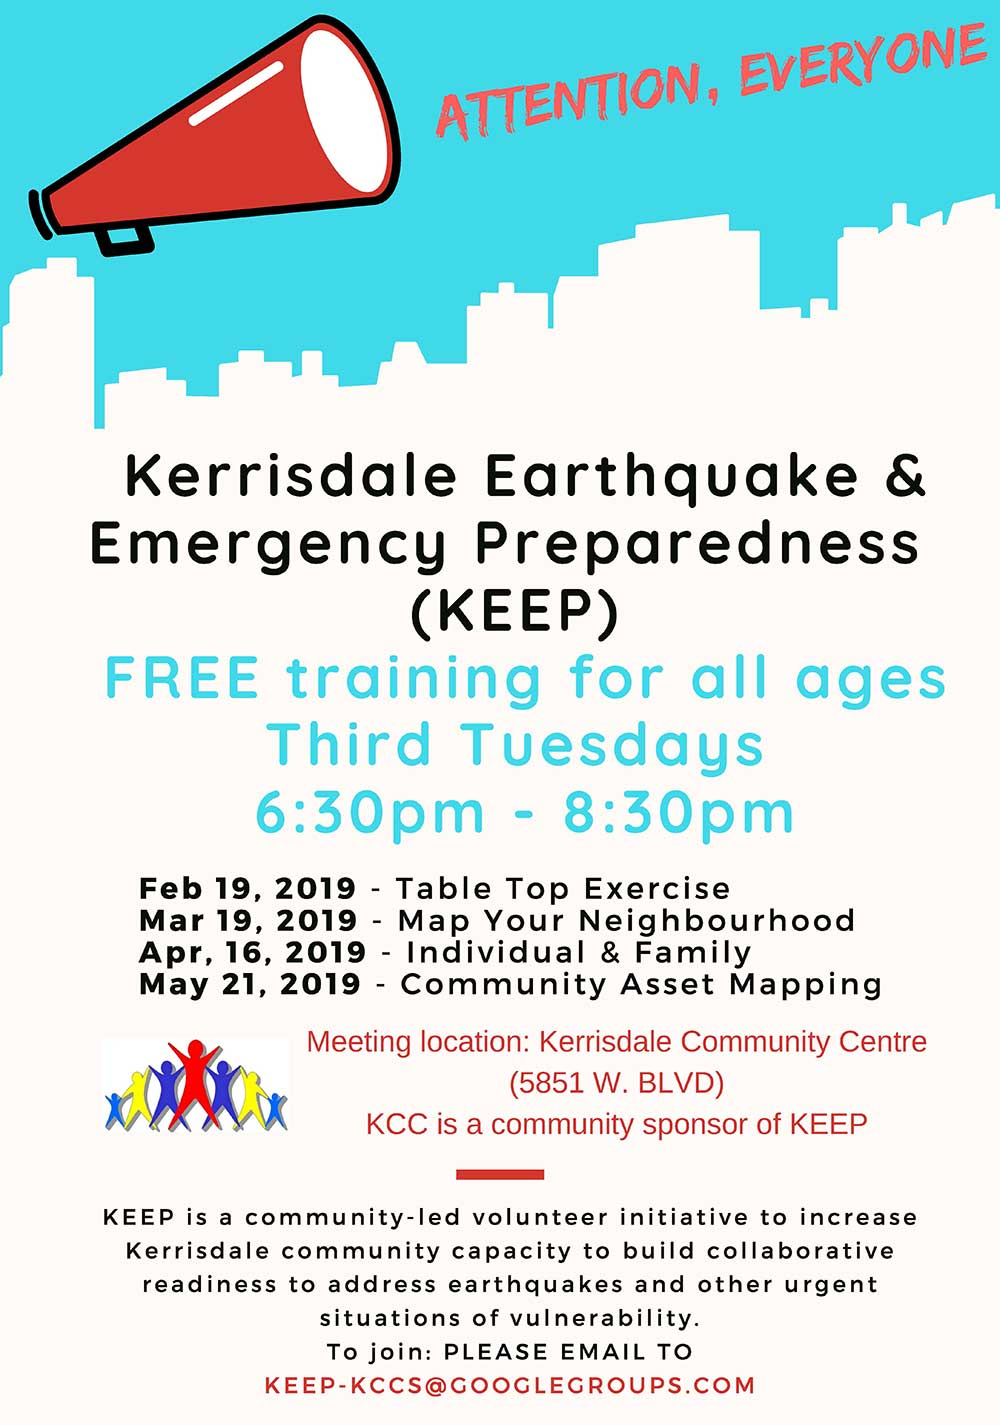 Kerrisdale Earthquake and Emergeny Preparedness (KEEP) All Ages KEEP is a community-led volunteer initiative to increase Kerrisdale community capacity, and build collaborative readiness to address earthquakes and other urgent situations of vulnerability. Free workshops will be held on the third Tuesday of each month. To join or inquire about more information, please email: KEEP-KCCS@googlegroups.com Tu 6:30 PM-8:30 PM FREE Map Your Neighbourhood Mar 19 Individual & Family Apr 16 Community Asset Mapping May 21